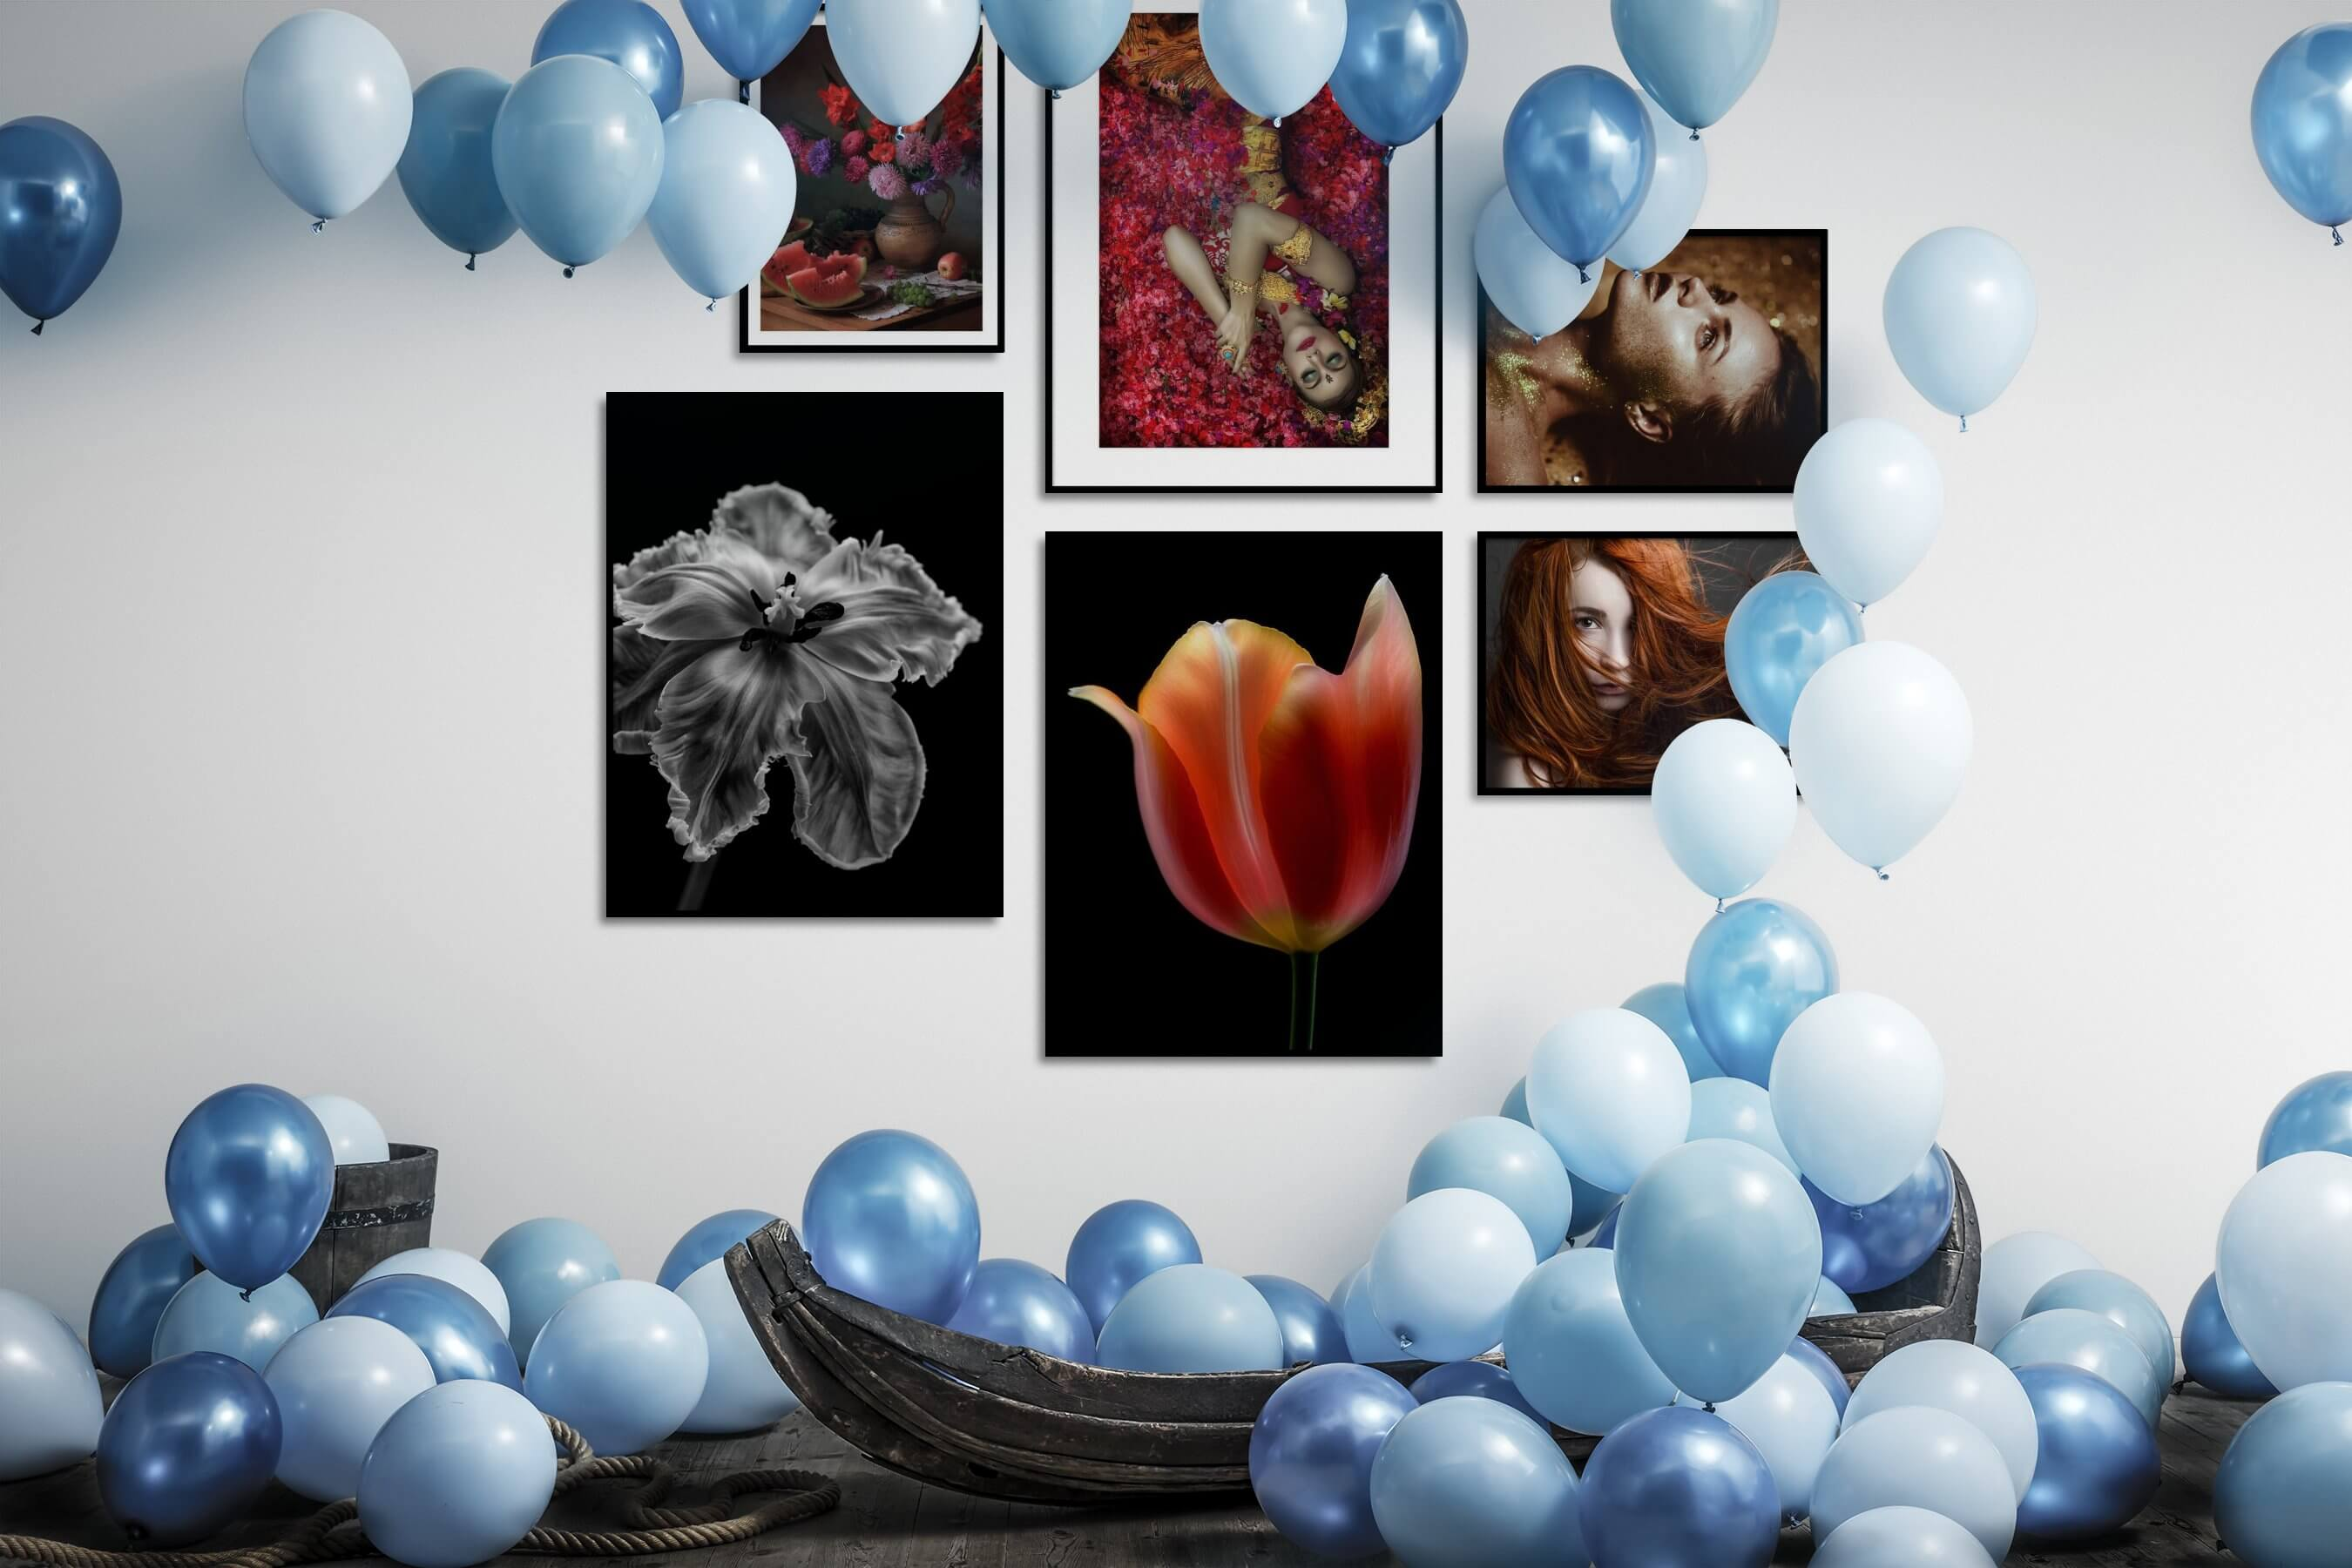 Gallery wall idea with six framed pictures arranged on a wall depicting Flowers & Plants, Vintage, Fashion & Beauty, Colorful, Black & White, Dark Tones, and For the Minimalist